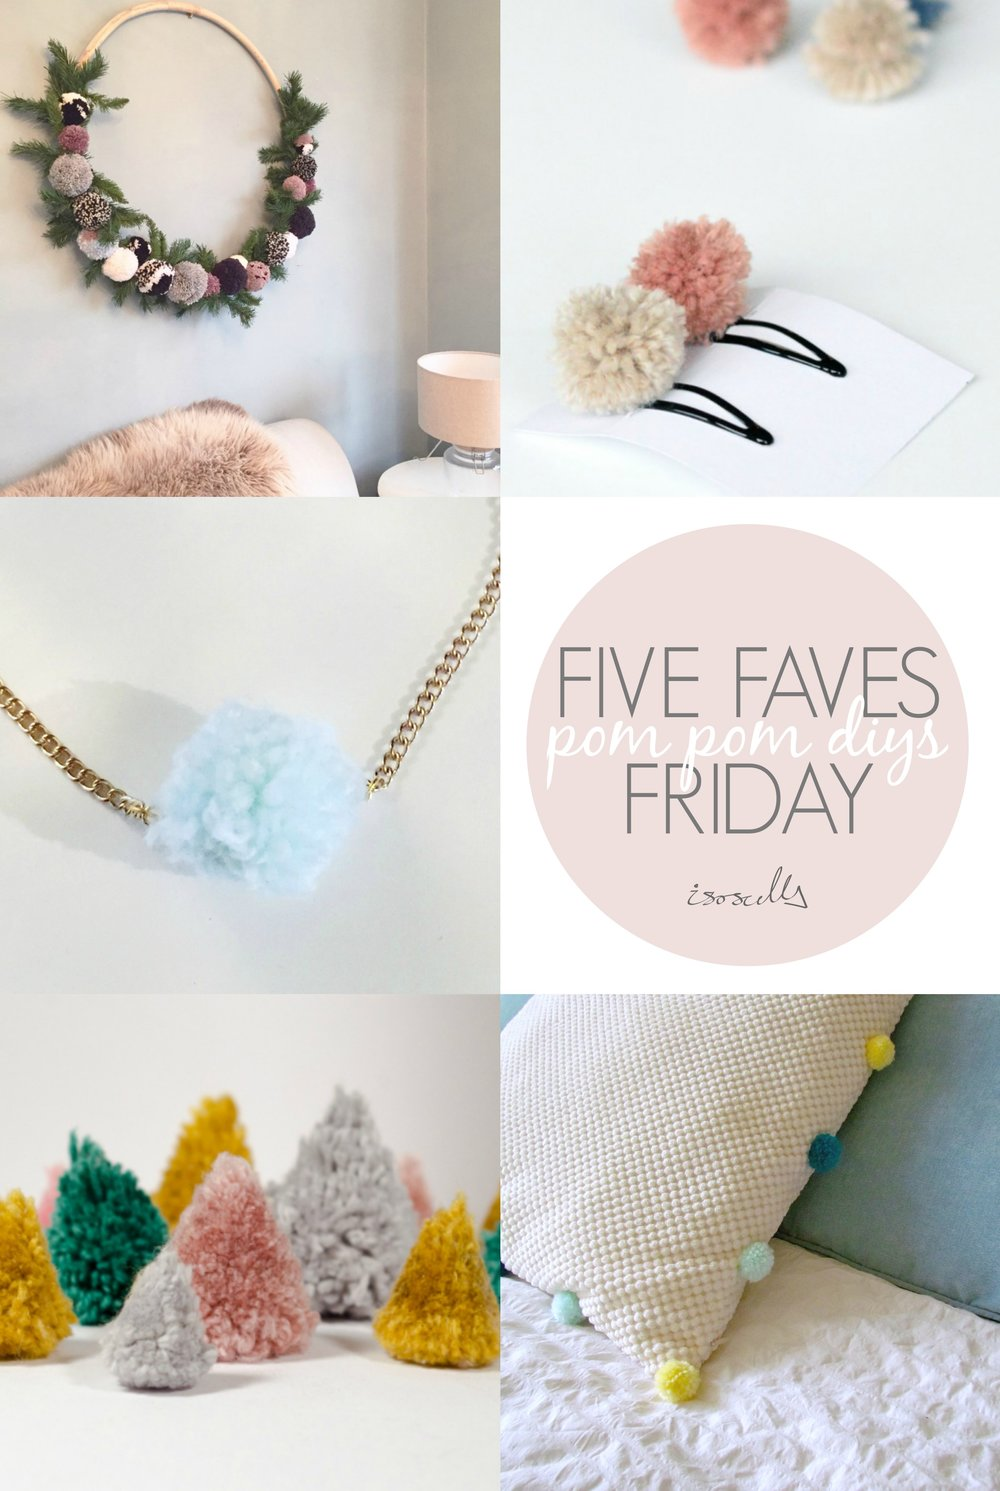 Five Faves Friday - Pom Pom DIYs by Isoscella